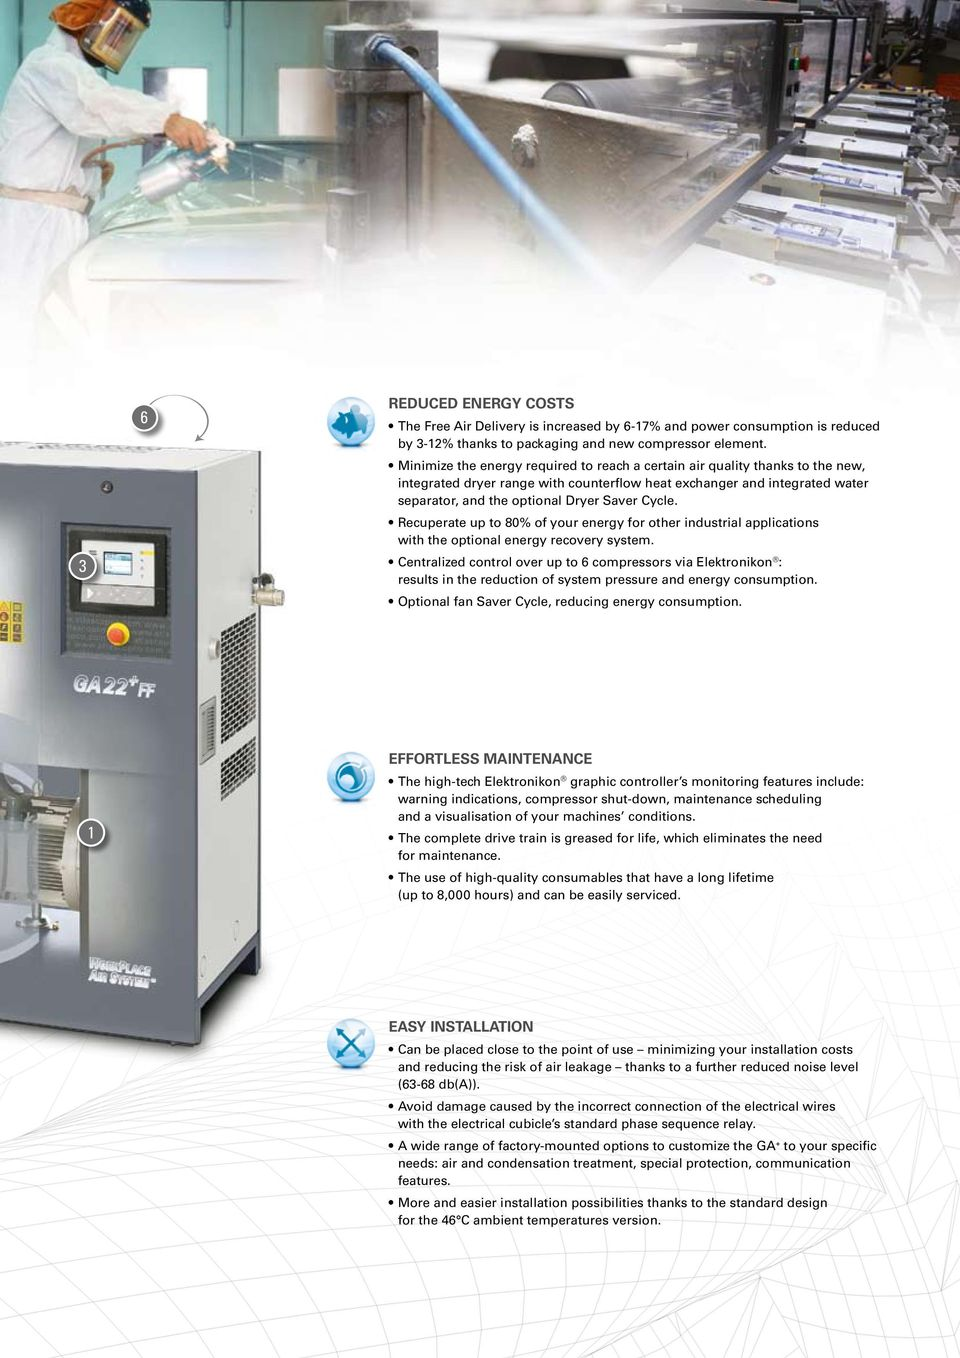 Cycle. Recuperate up to 80% of your energy for other industrial applications with the optional energy recovery system.